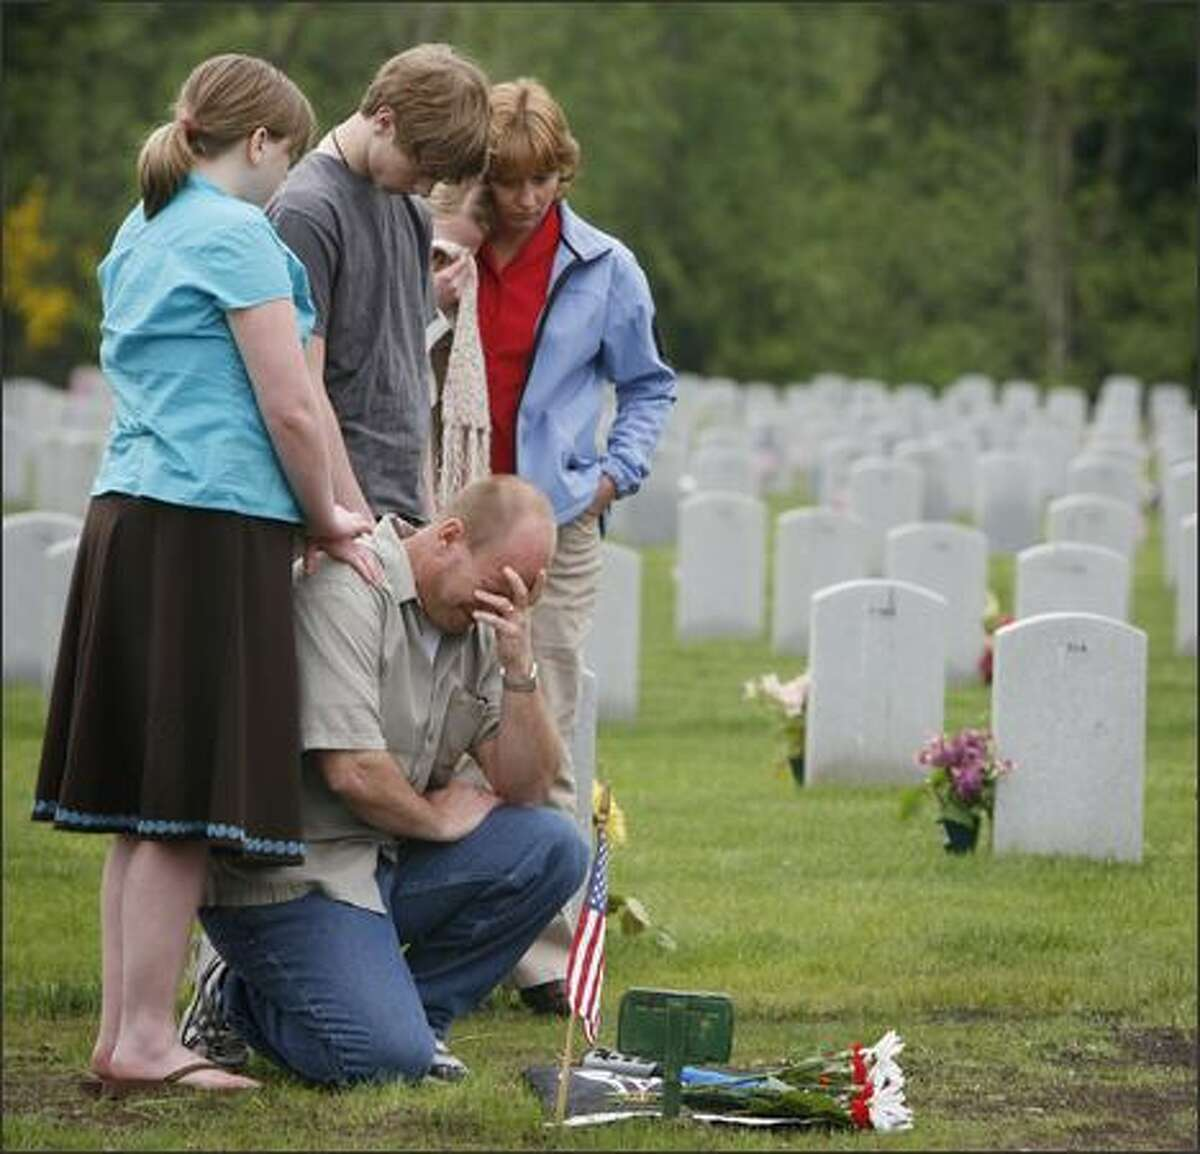 On Memorial Day, hundreds of families came to Tahoma National Cemetery to visit the graves of loved ones. More than 20,000 are buried at Tahoma.